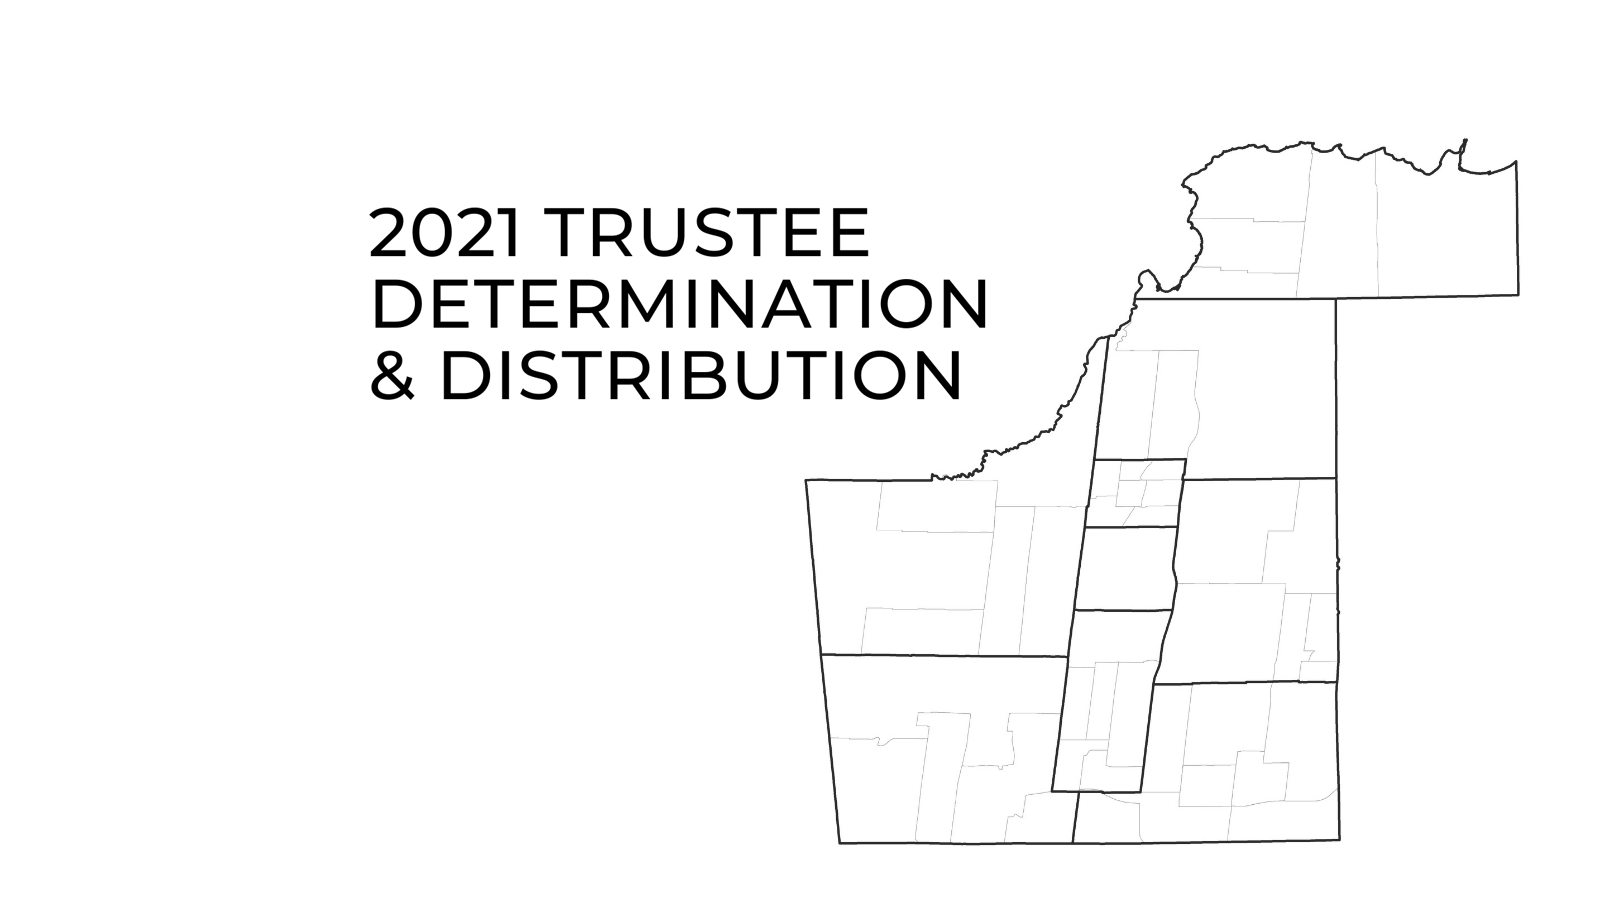 Trustee Determination and Distribution - Consultation and Survey